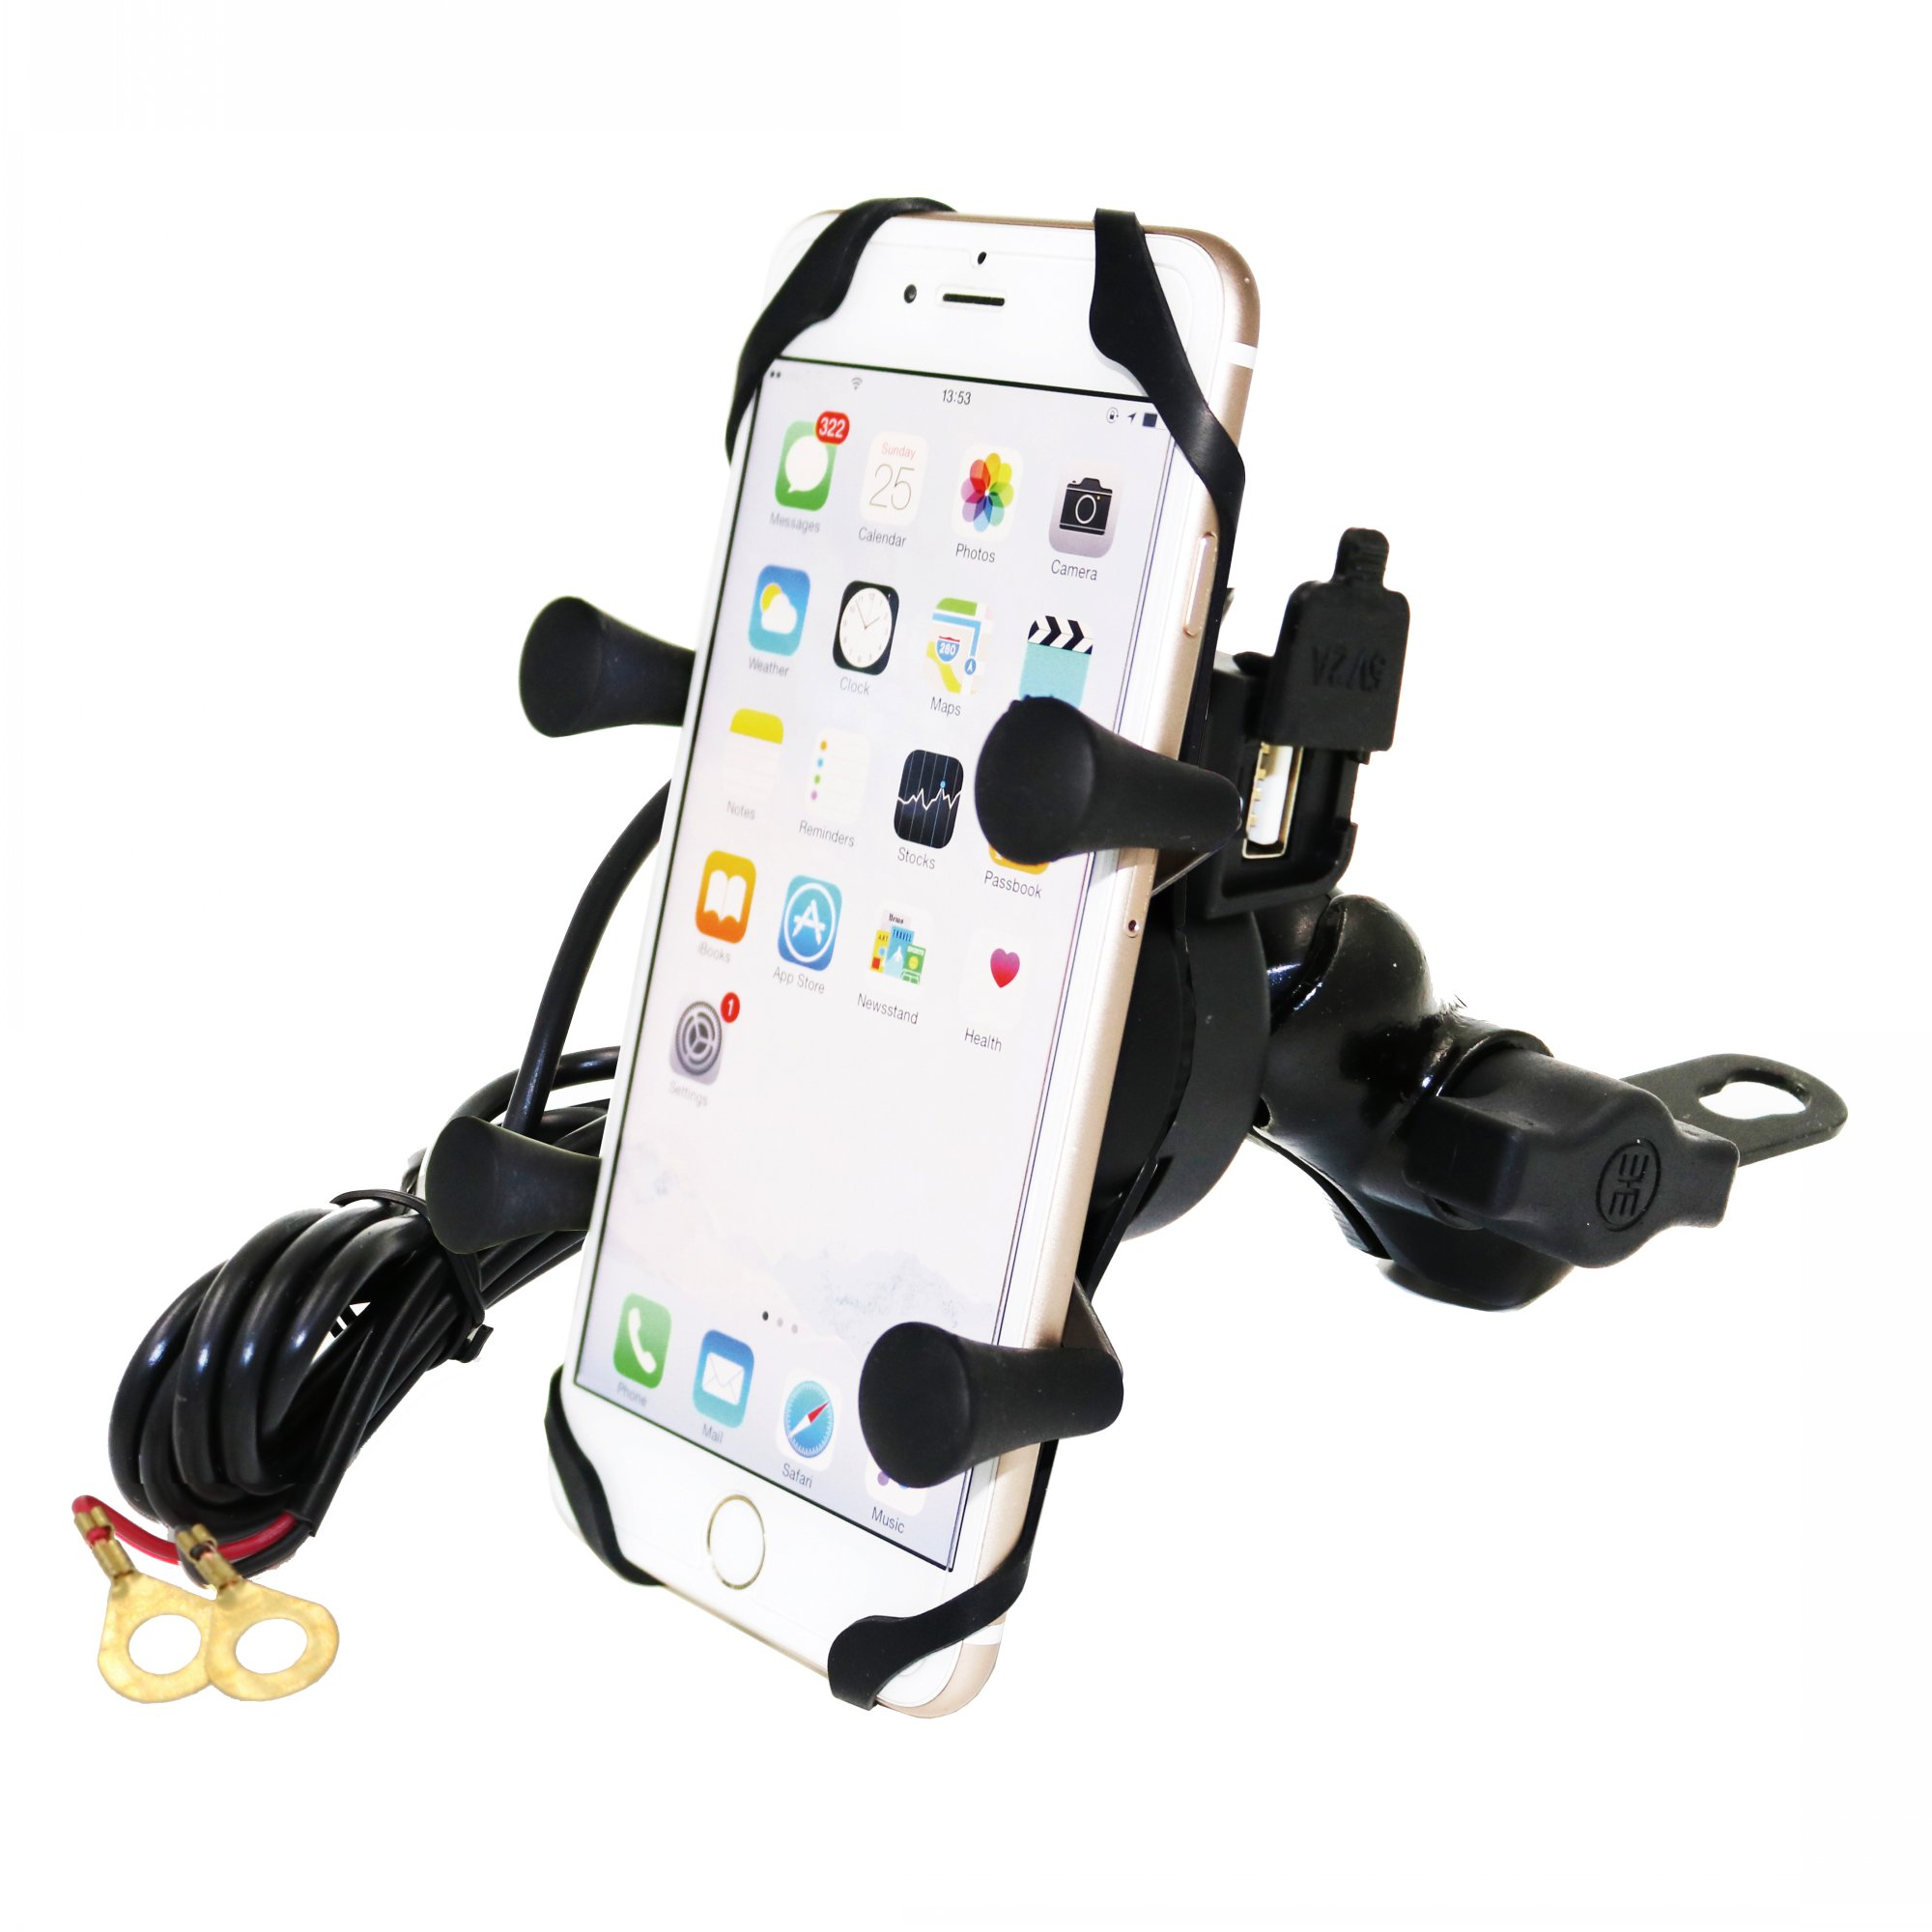 MOTOPOWER MP0609D Bike Motorcycle Cell Phone Mount Holder With USB Charger Bicycle Motorcycle Handlebar Holder for phone GPS